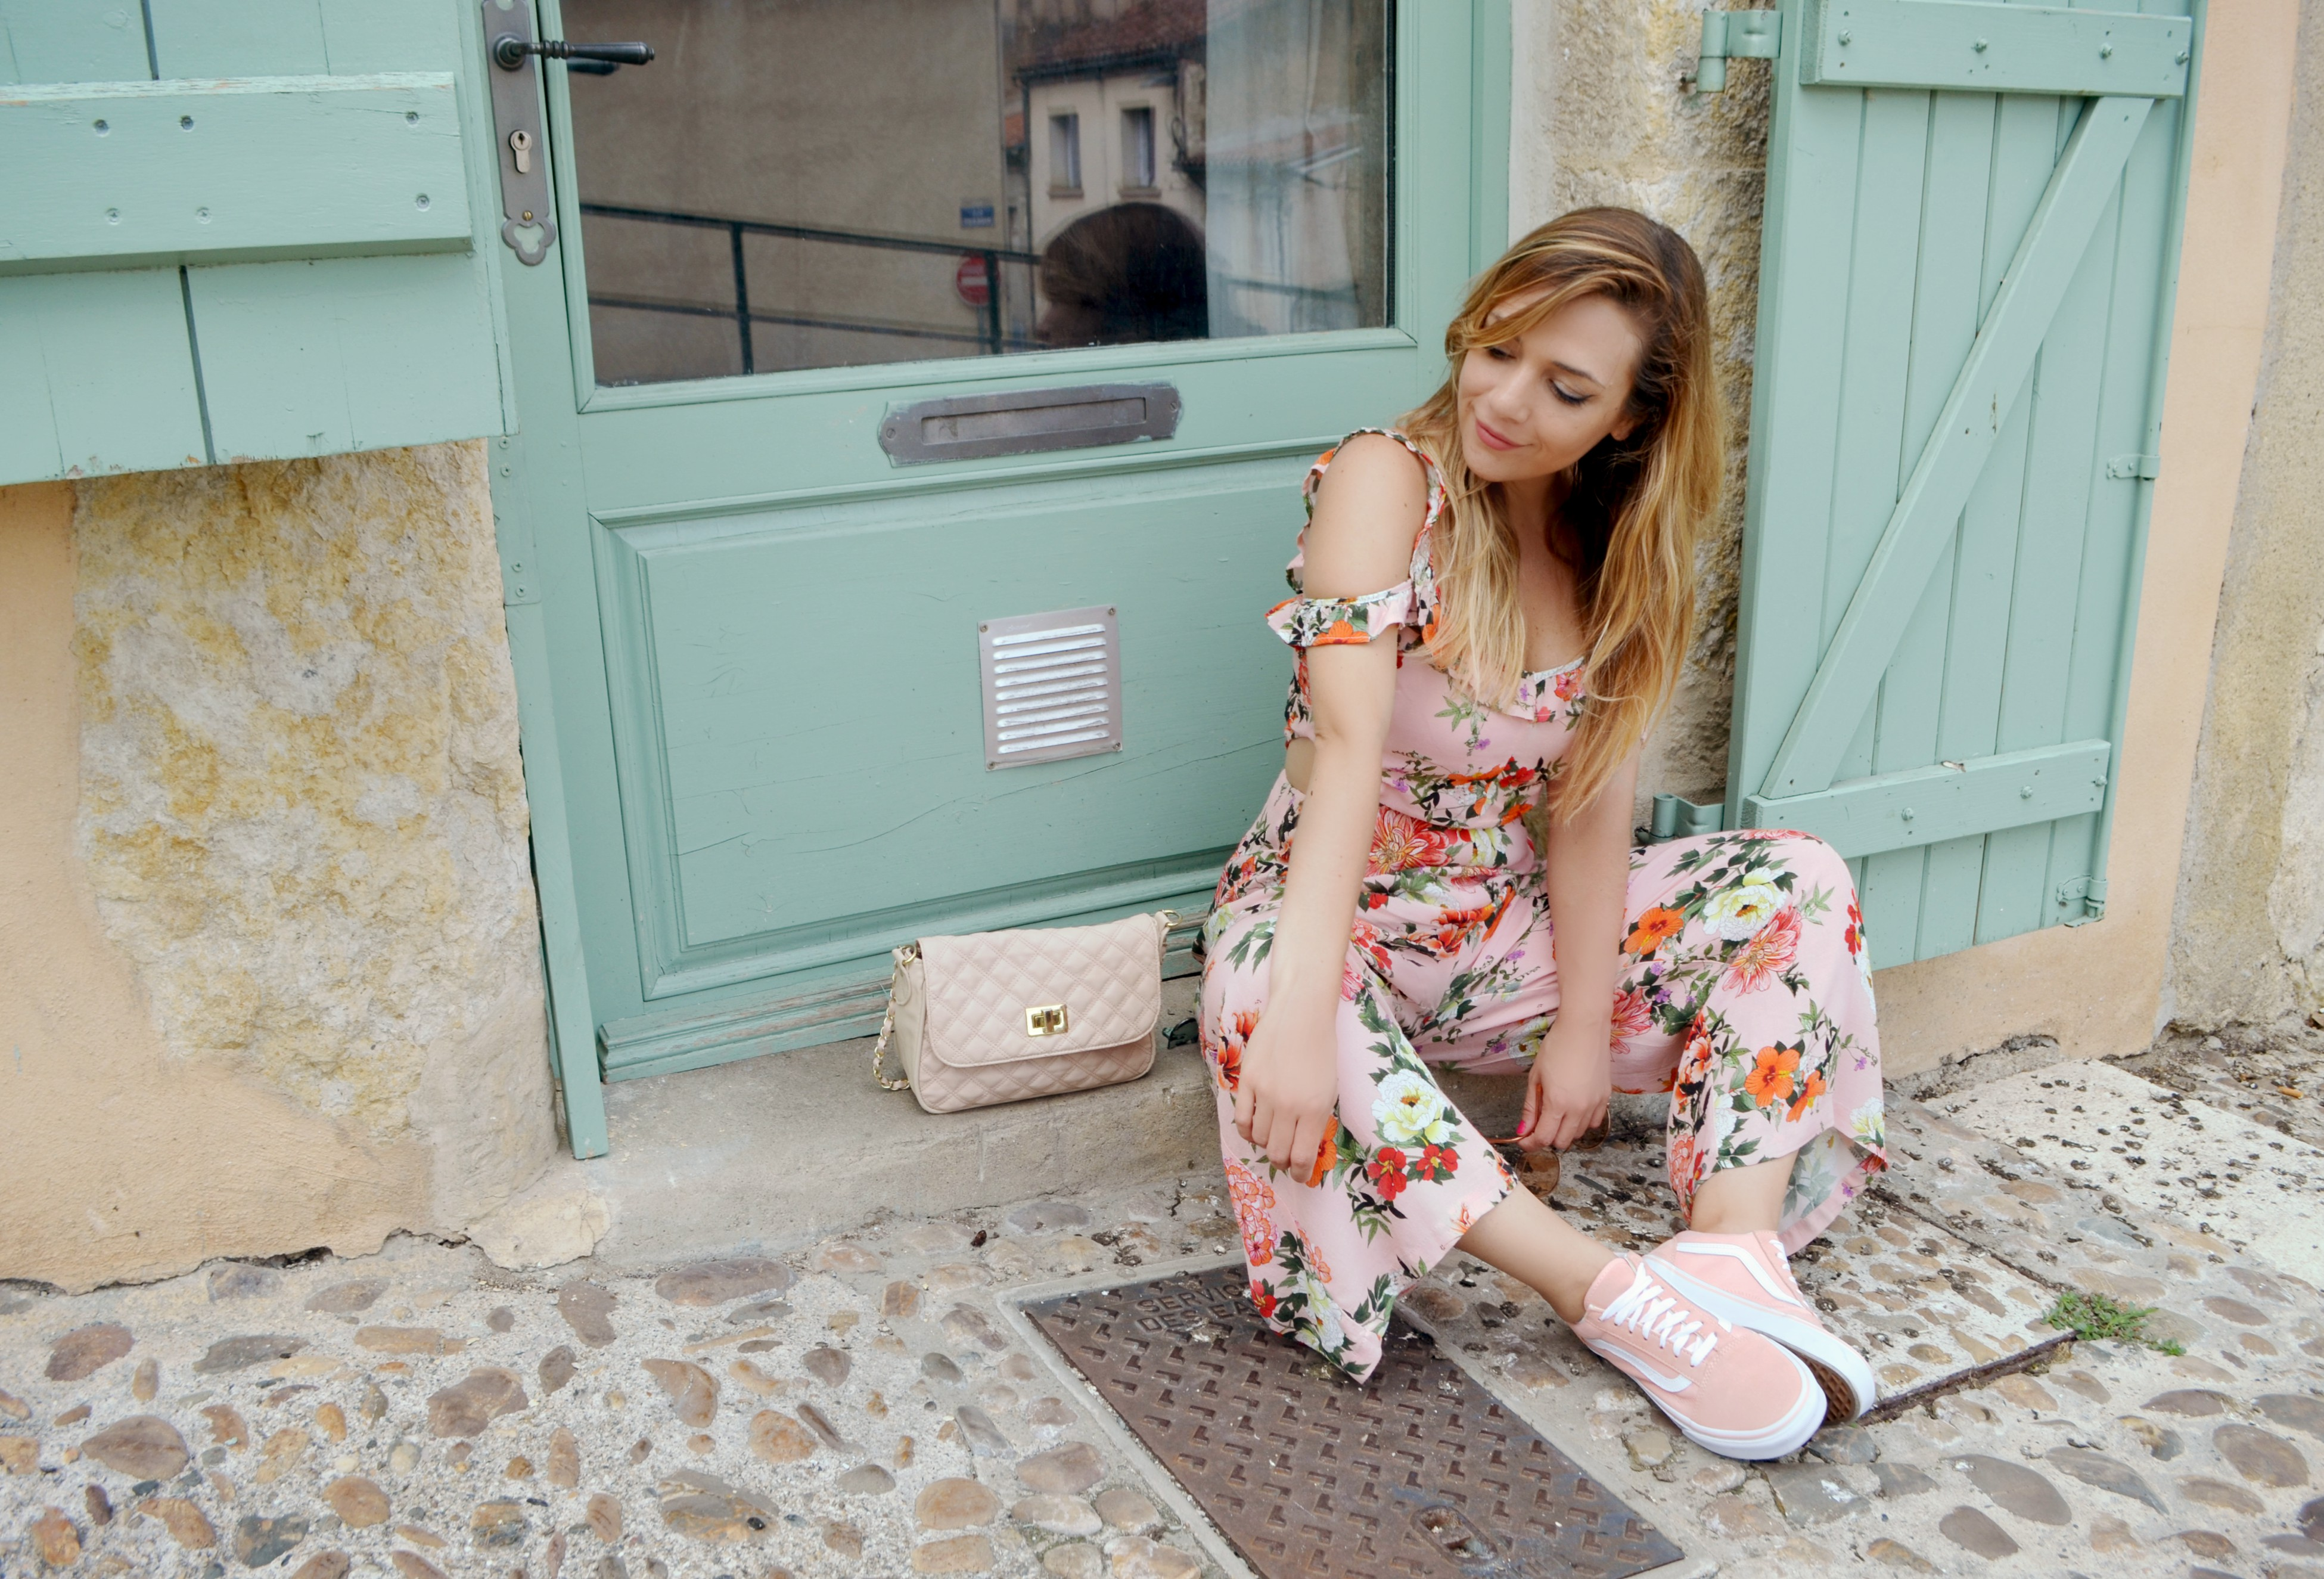 ChicAdicta-Vans-look-blog-de-moda-Chic-Adicta-influencer-fashion-travel-mono-de-flores-bershka-Auch-France-PiensaenChic-Piensa-en-Chic